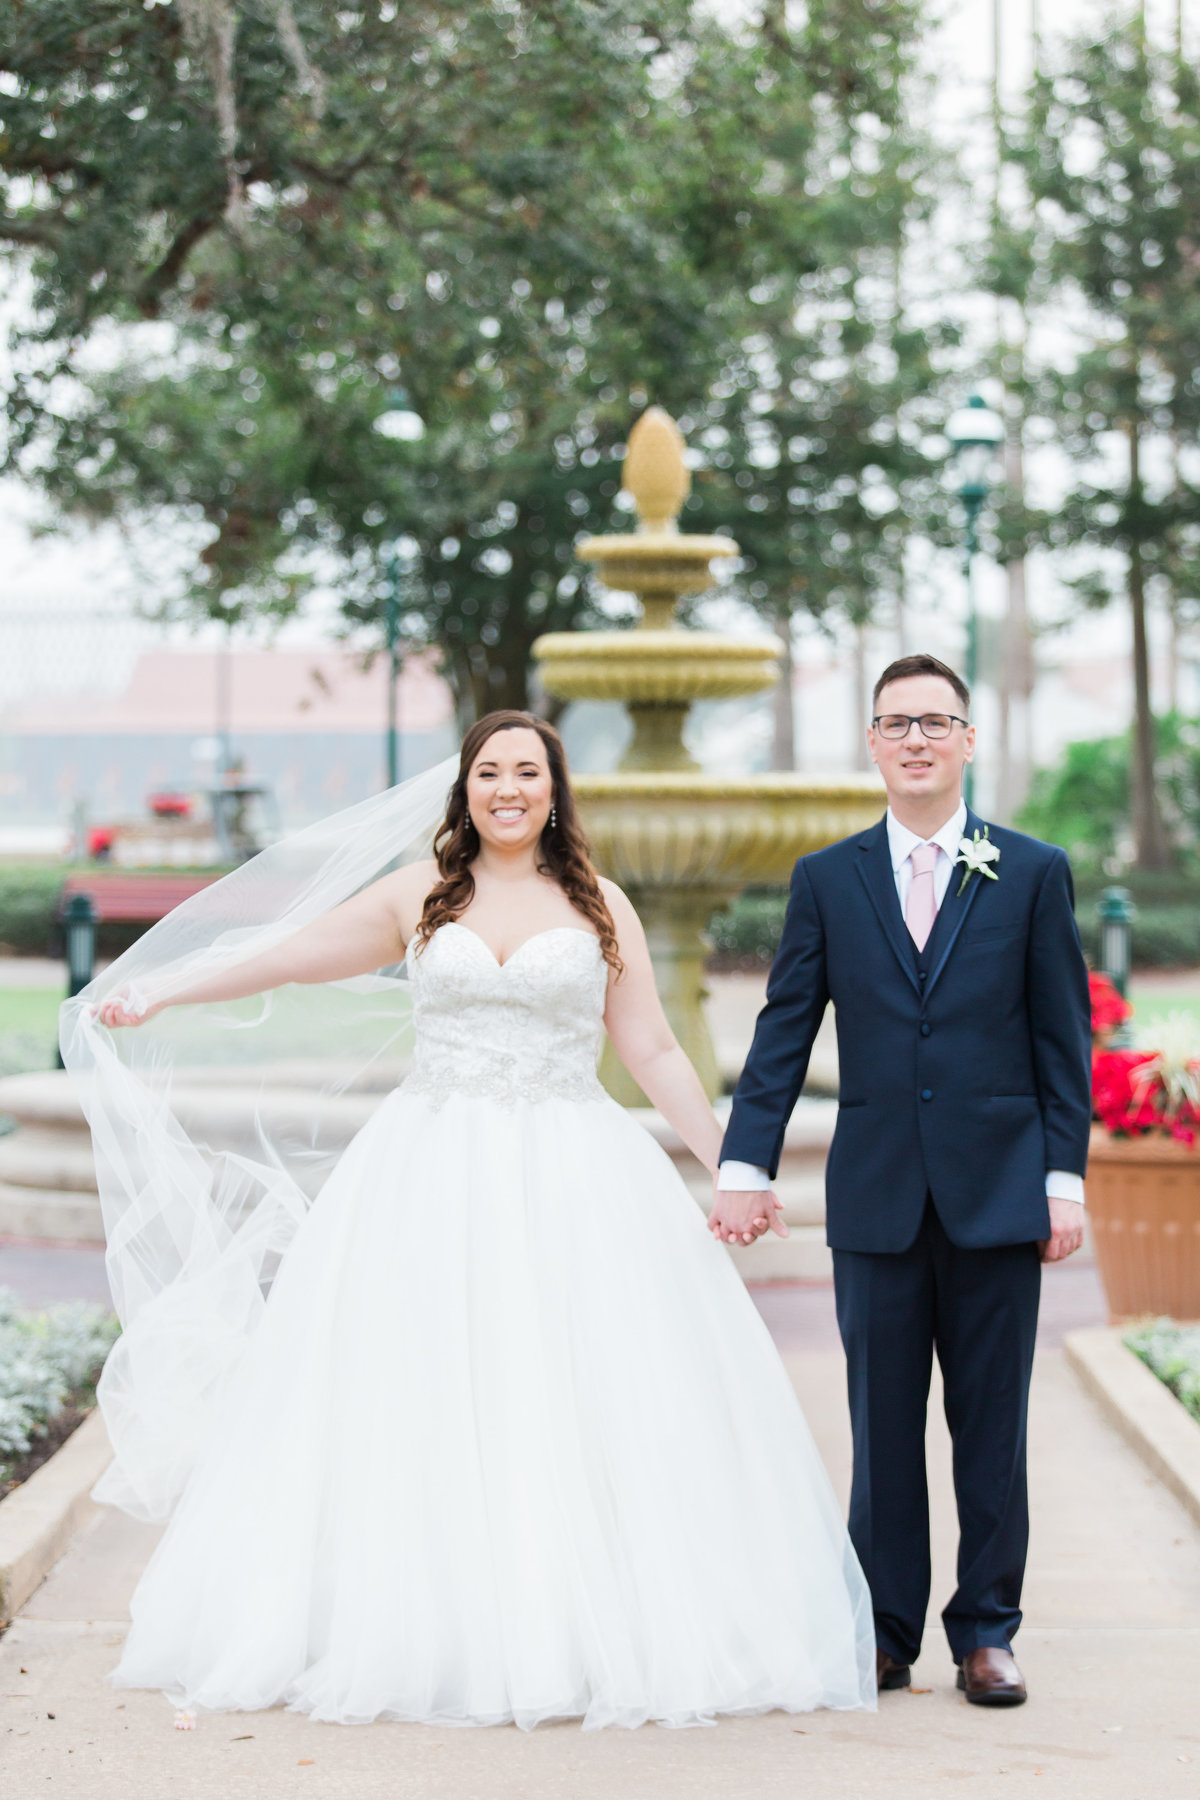 Jess Collins Photography Our Disney Wedding 2017 (140 of 668)